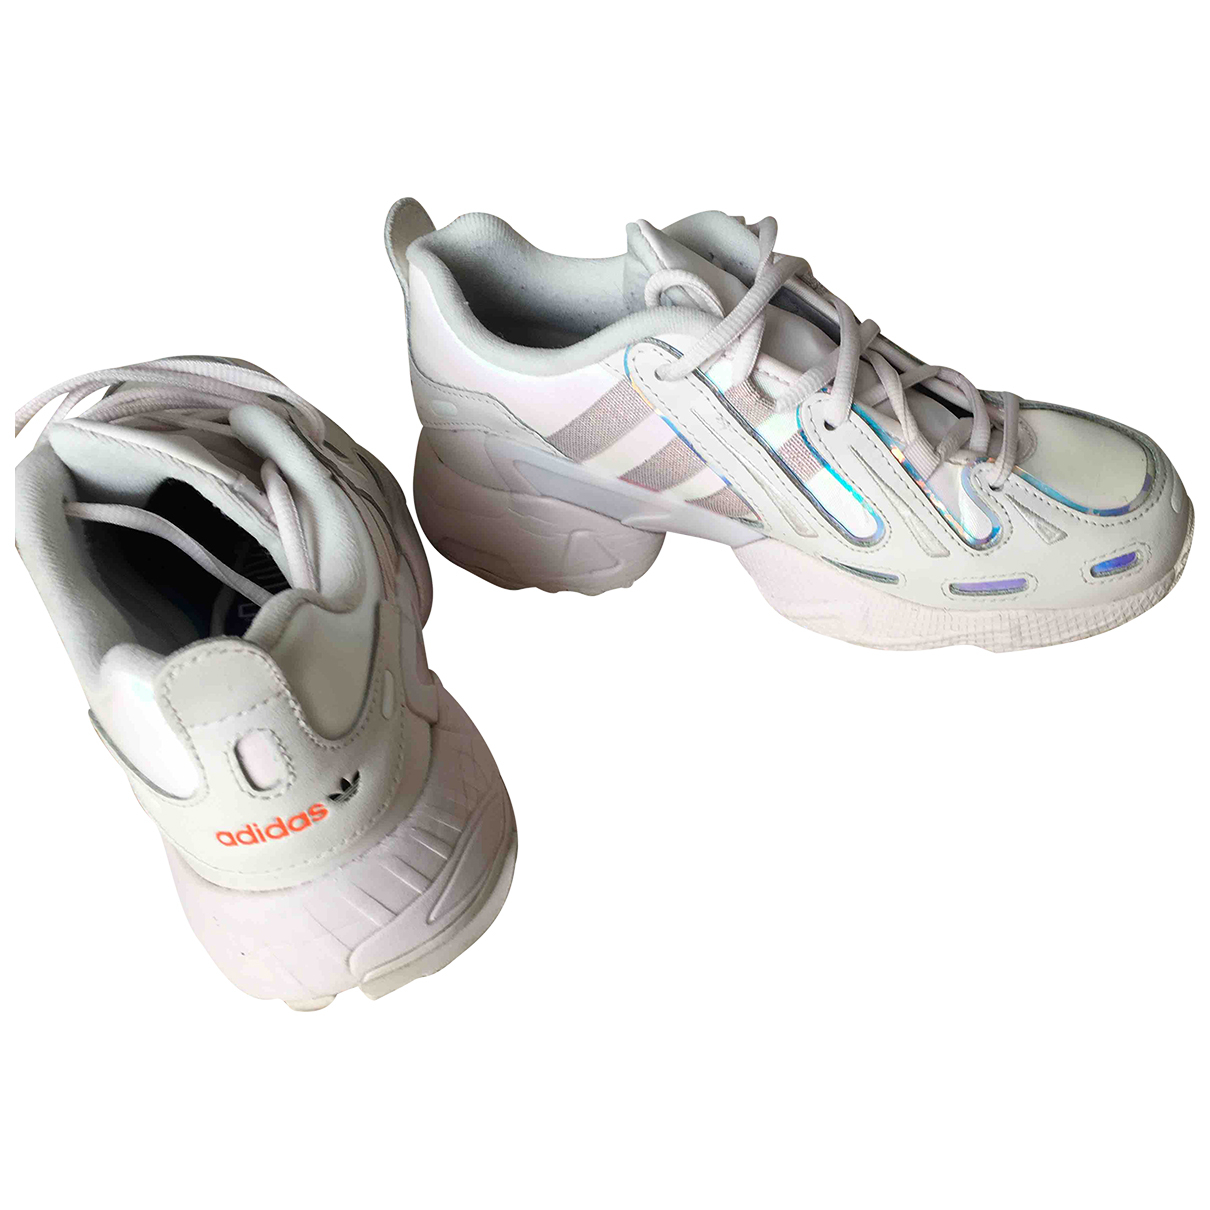 Adidas Gazelle Pink Leather Trainers for Women 37 EU